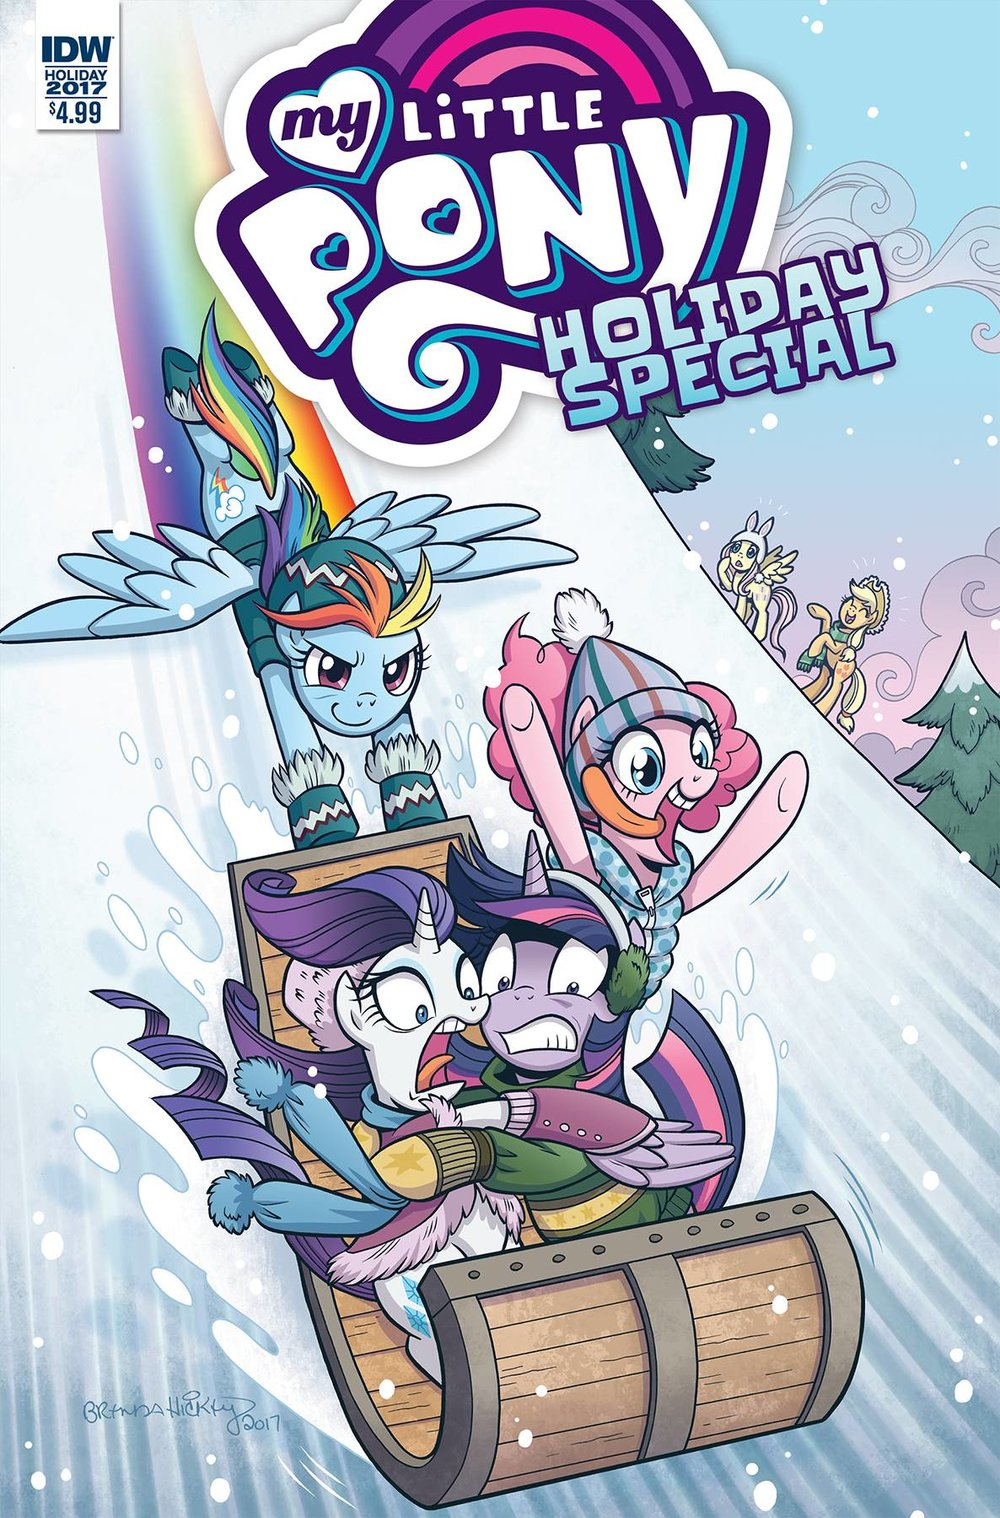 MY LITTLE PONY HOLIDAY SPECIAL 2017 1 CVR A HICKEY.jpg